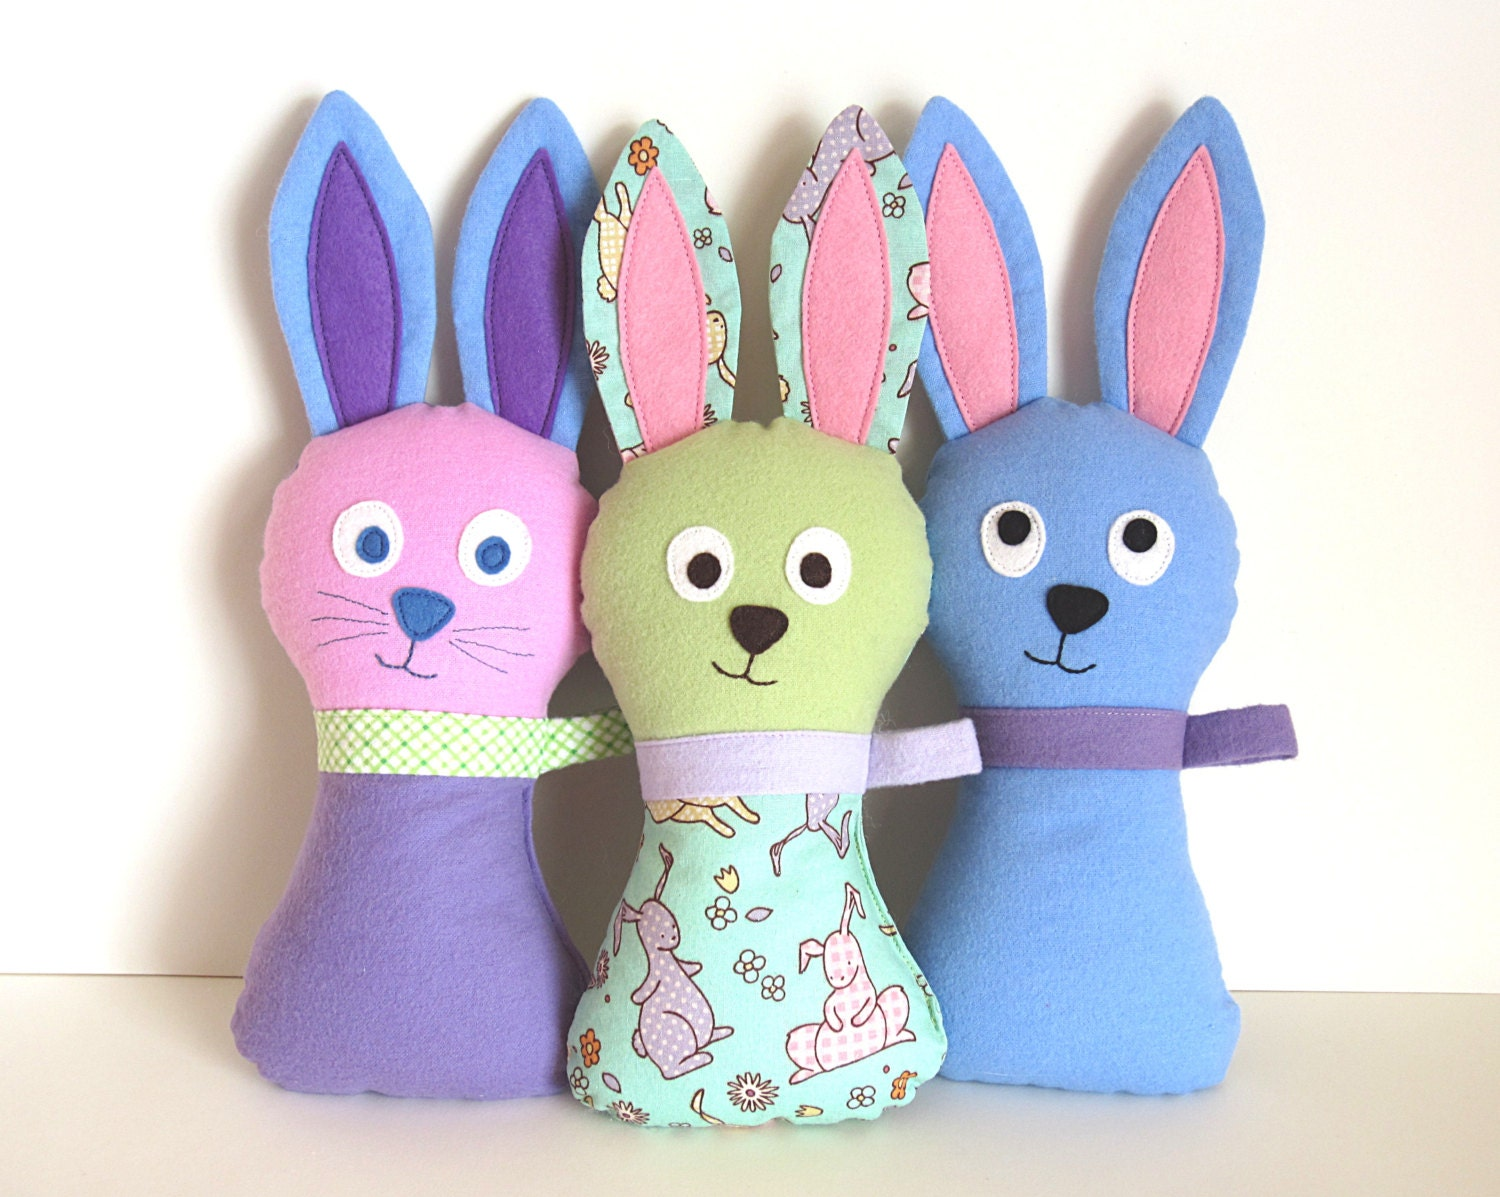 Stuffed Bunny Pattern - Hoppy Loppy PDF Sewing Pattern - Soft Toy Baby Plush DIY Easter Bunny for Springtime Peek-a-Boo Instant Download - MyFunnyBuddy